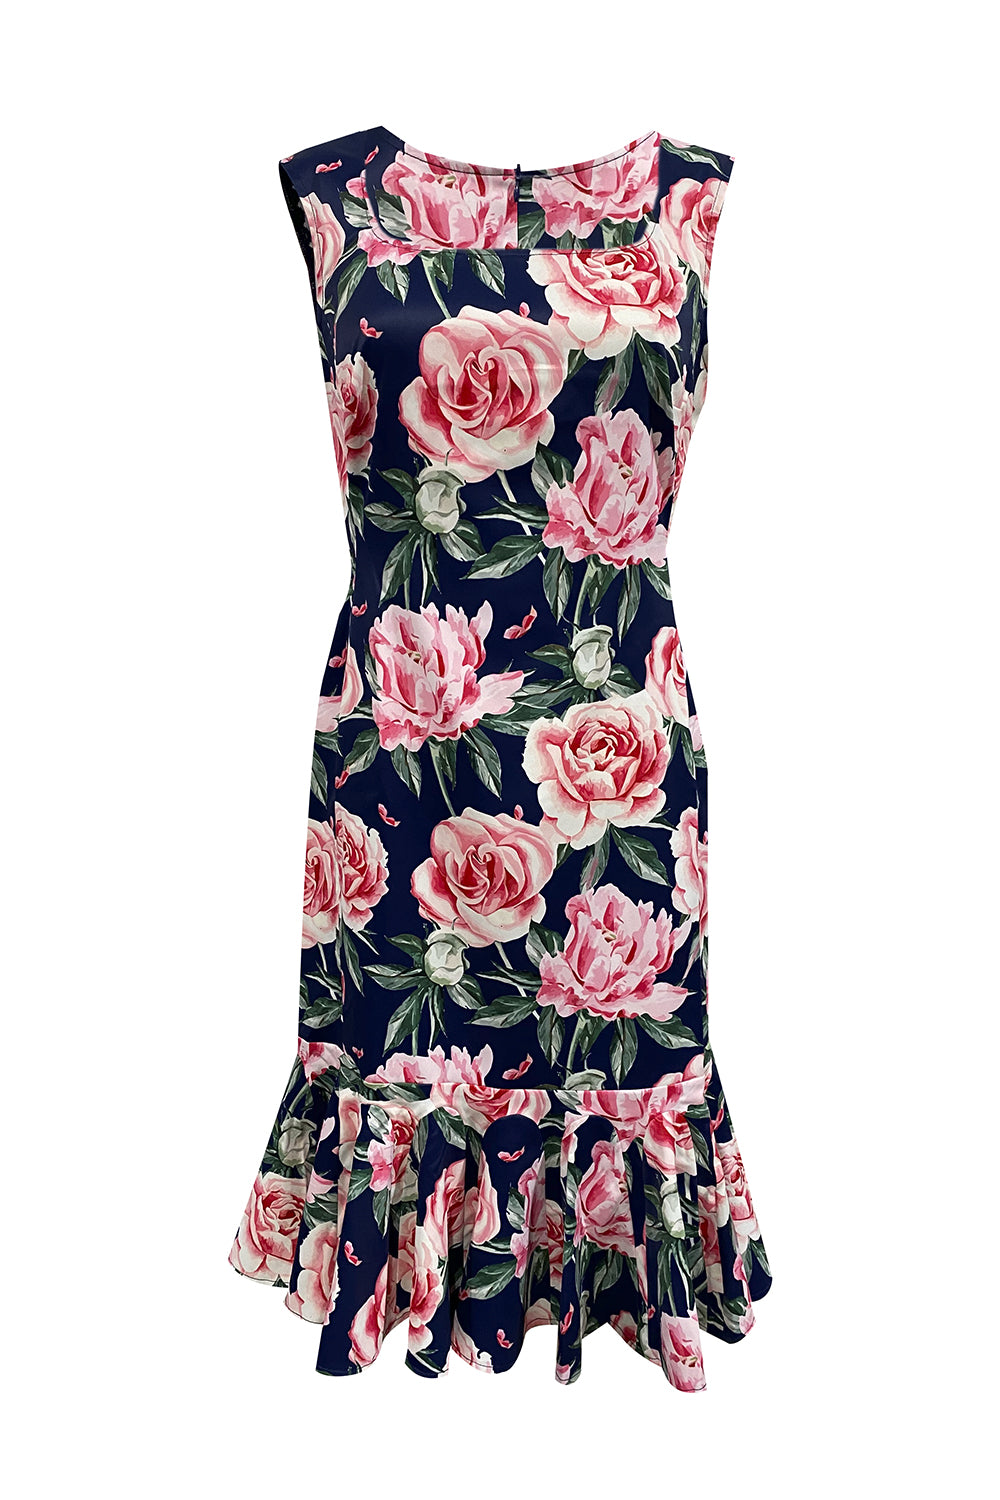 The Lost Lolly Dress - Annah Stretton Navy Floral Dress Knee Length Mother of the Bride Dress